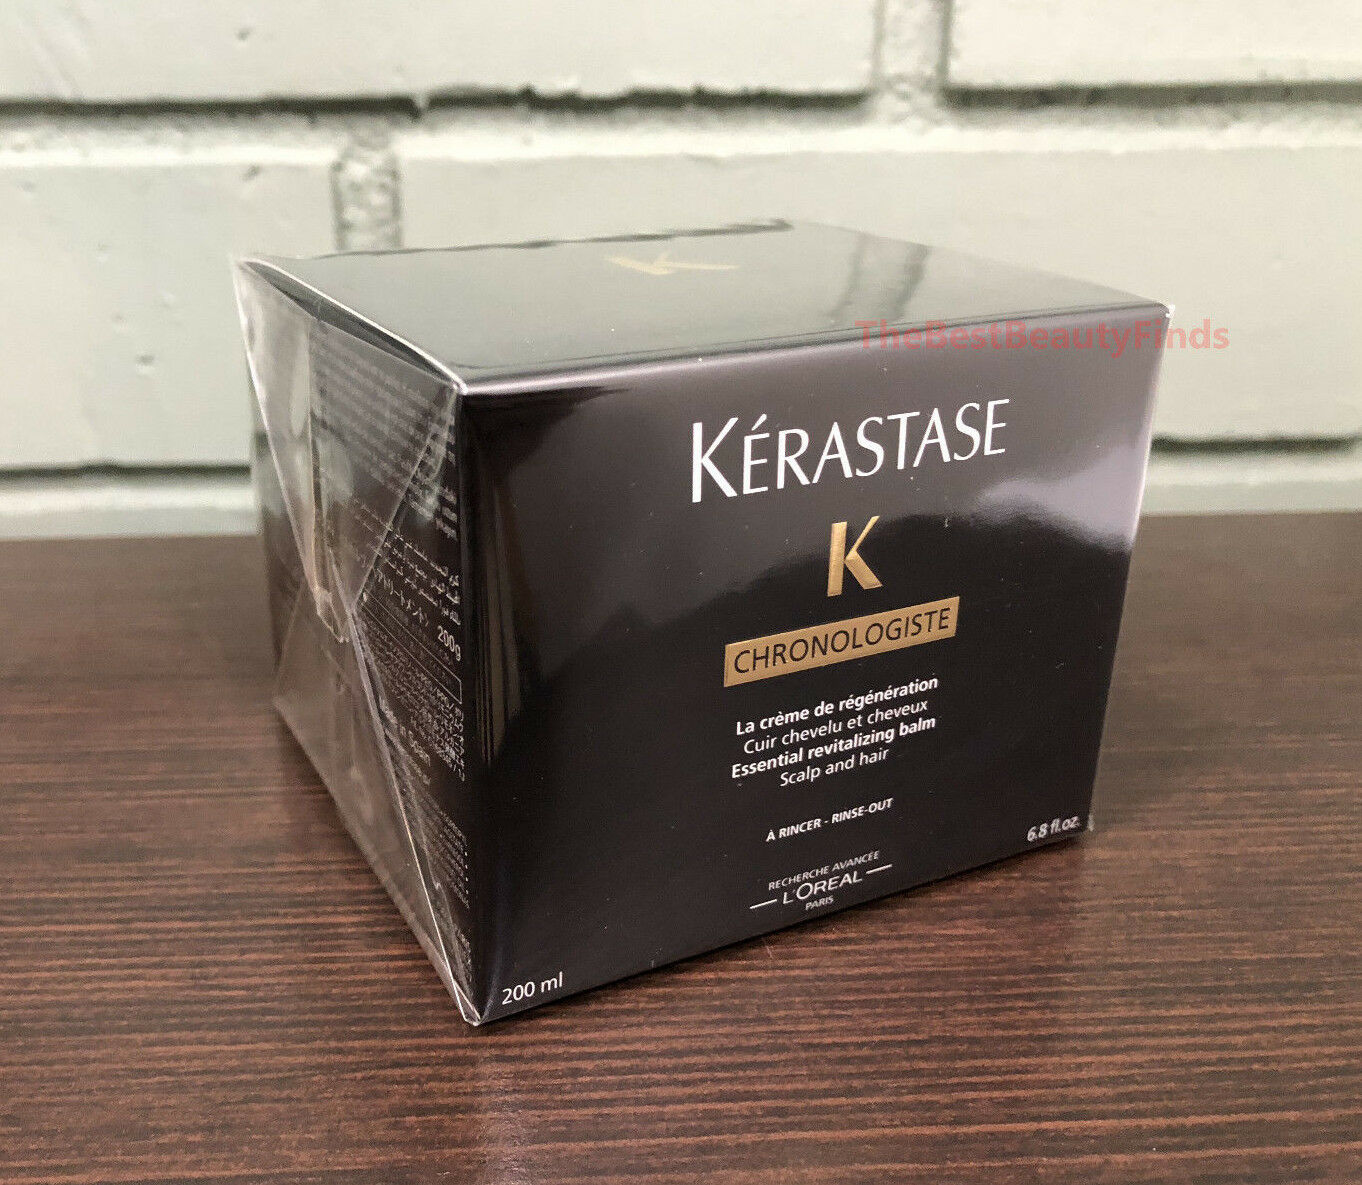 Kerastase Chronologiste Masque Essential Revitalizing Balm 6